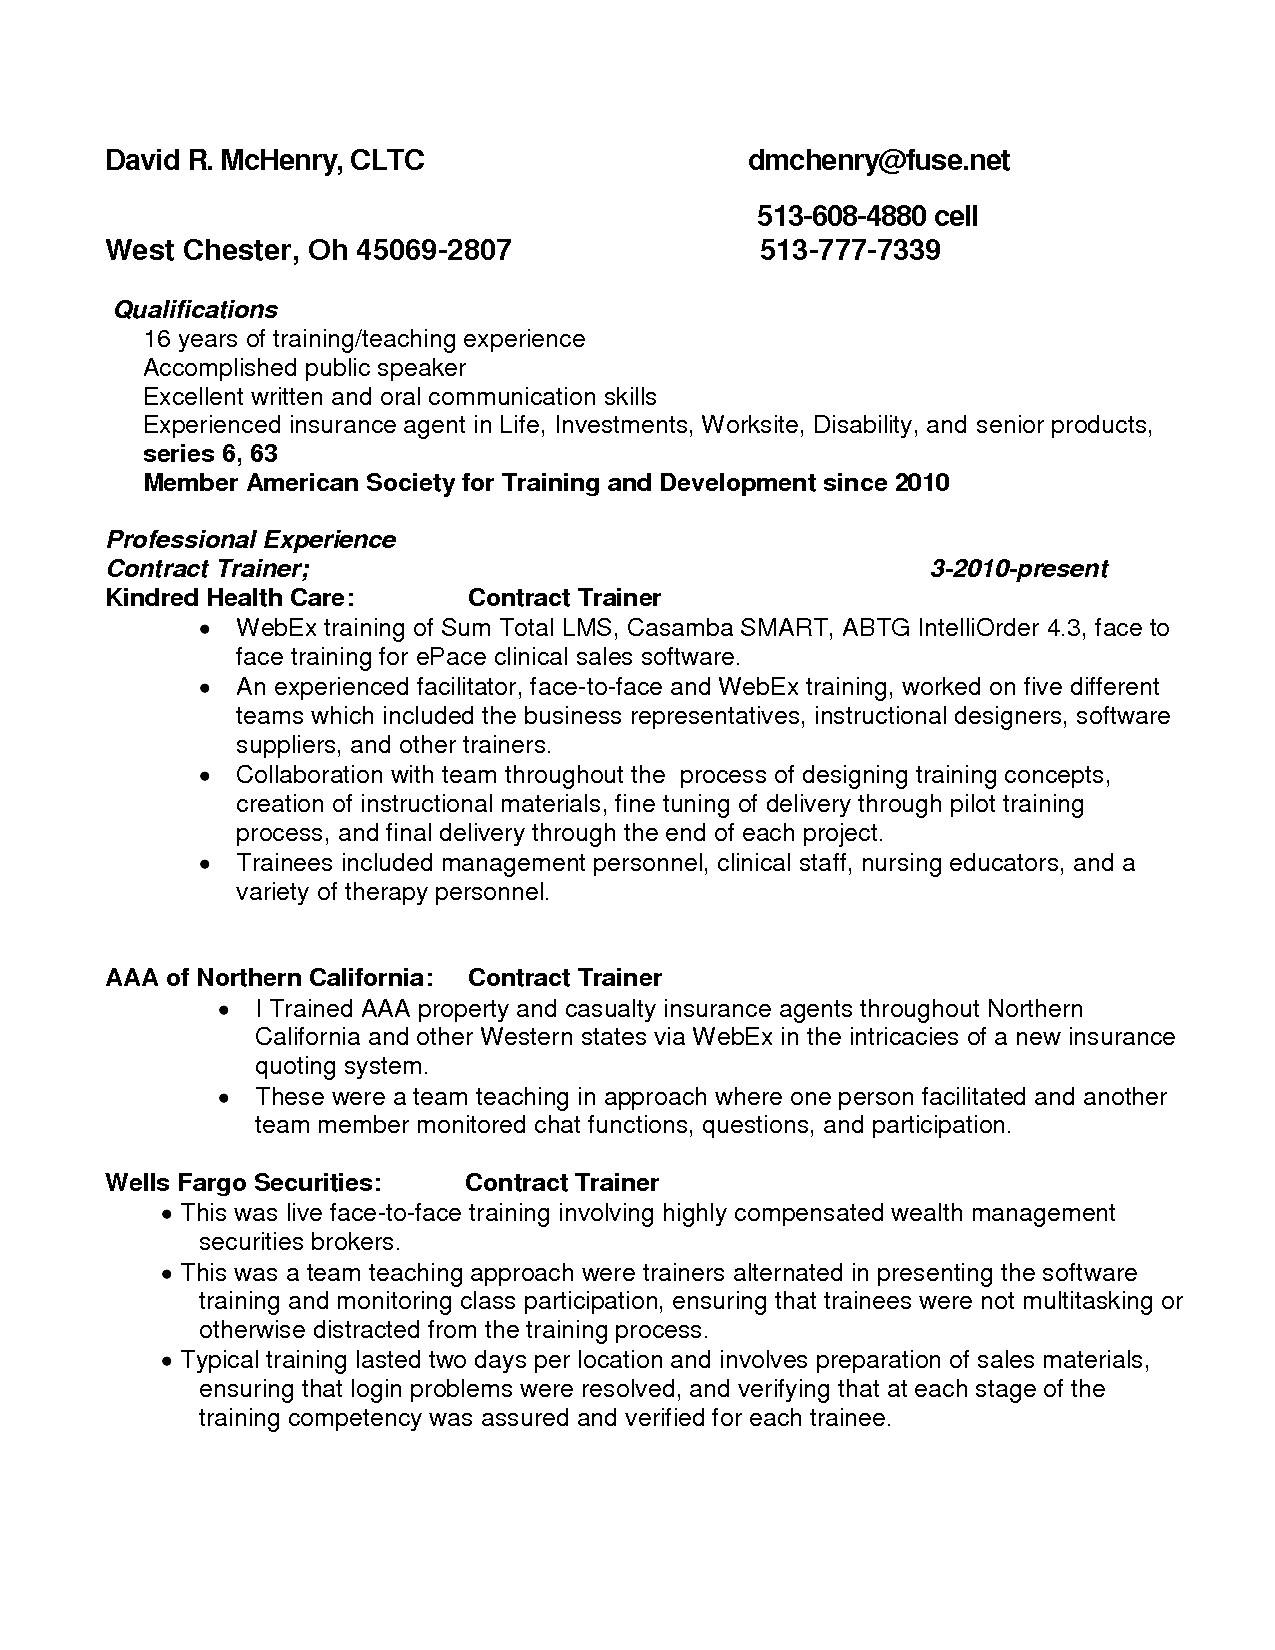 Enrolled Agent Resume Sample Insurance Agent Resume Examples Http Www Jobresume